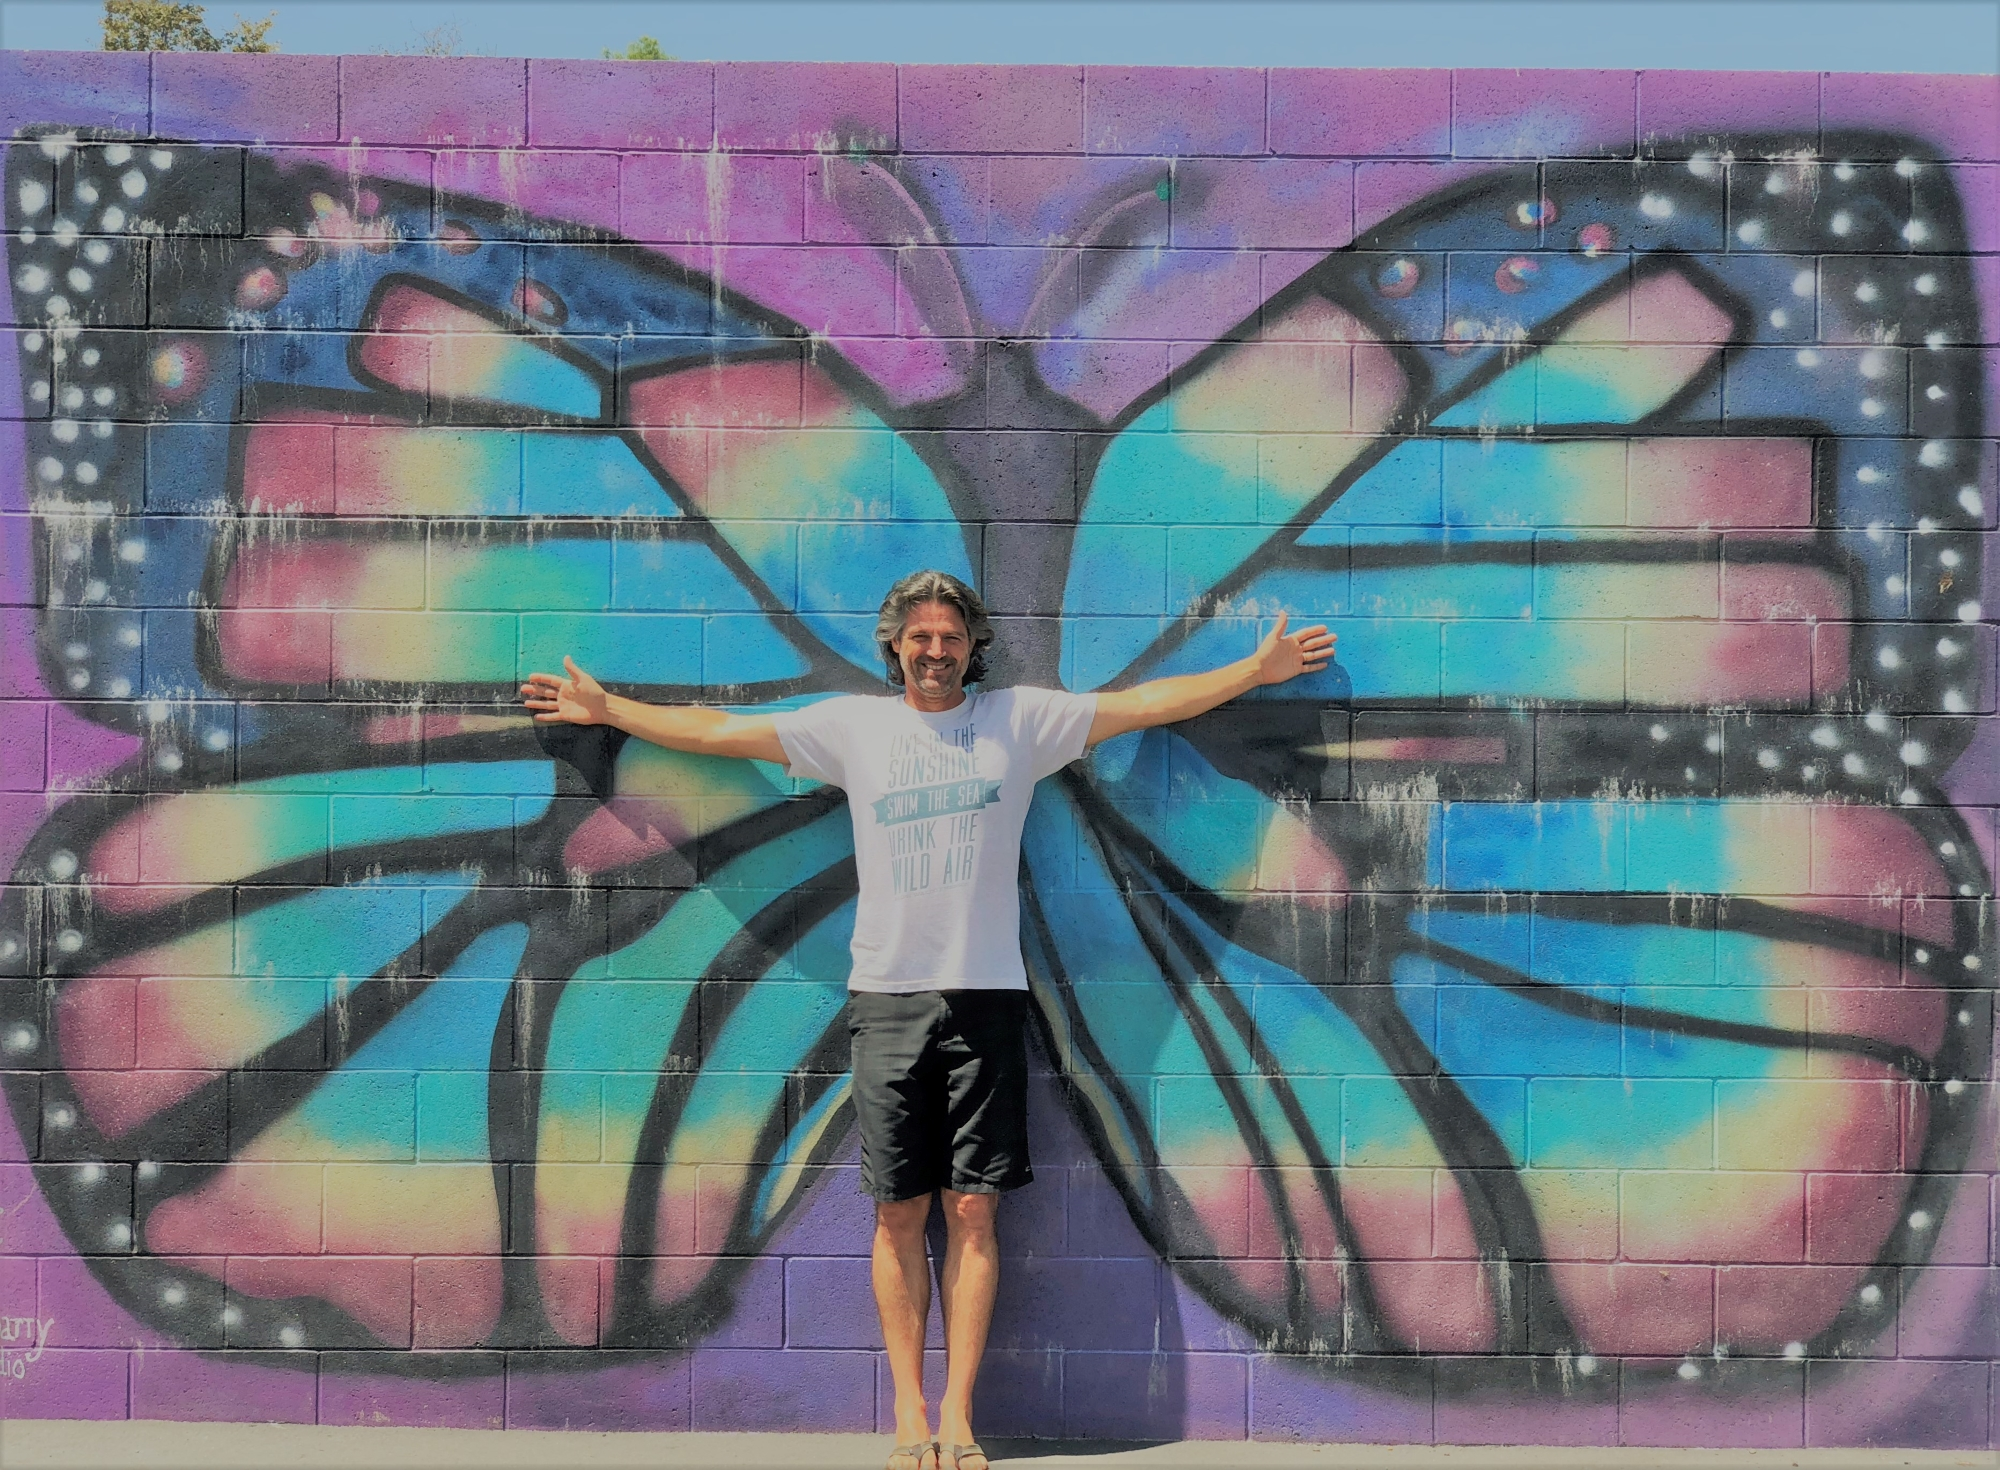 Mr. Retzer standing in front of the butterfly wall on the playground